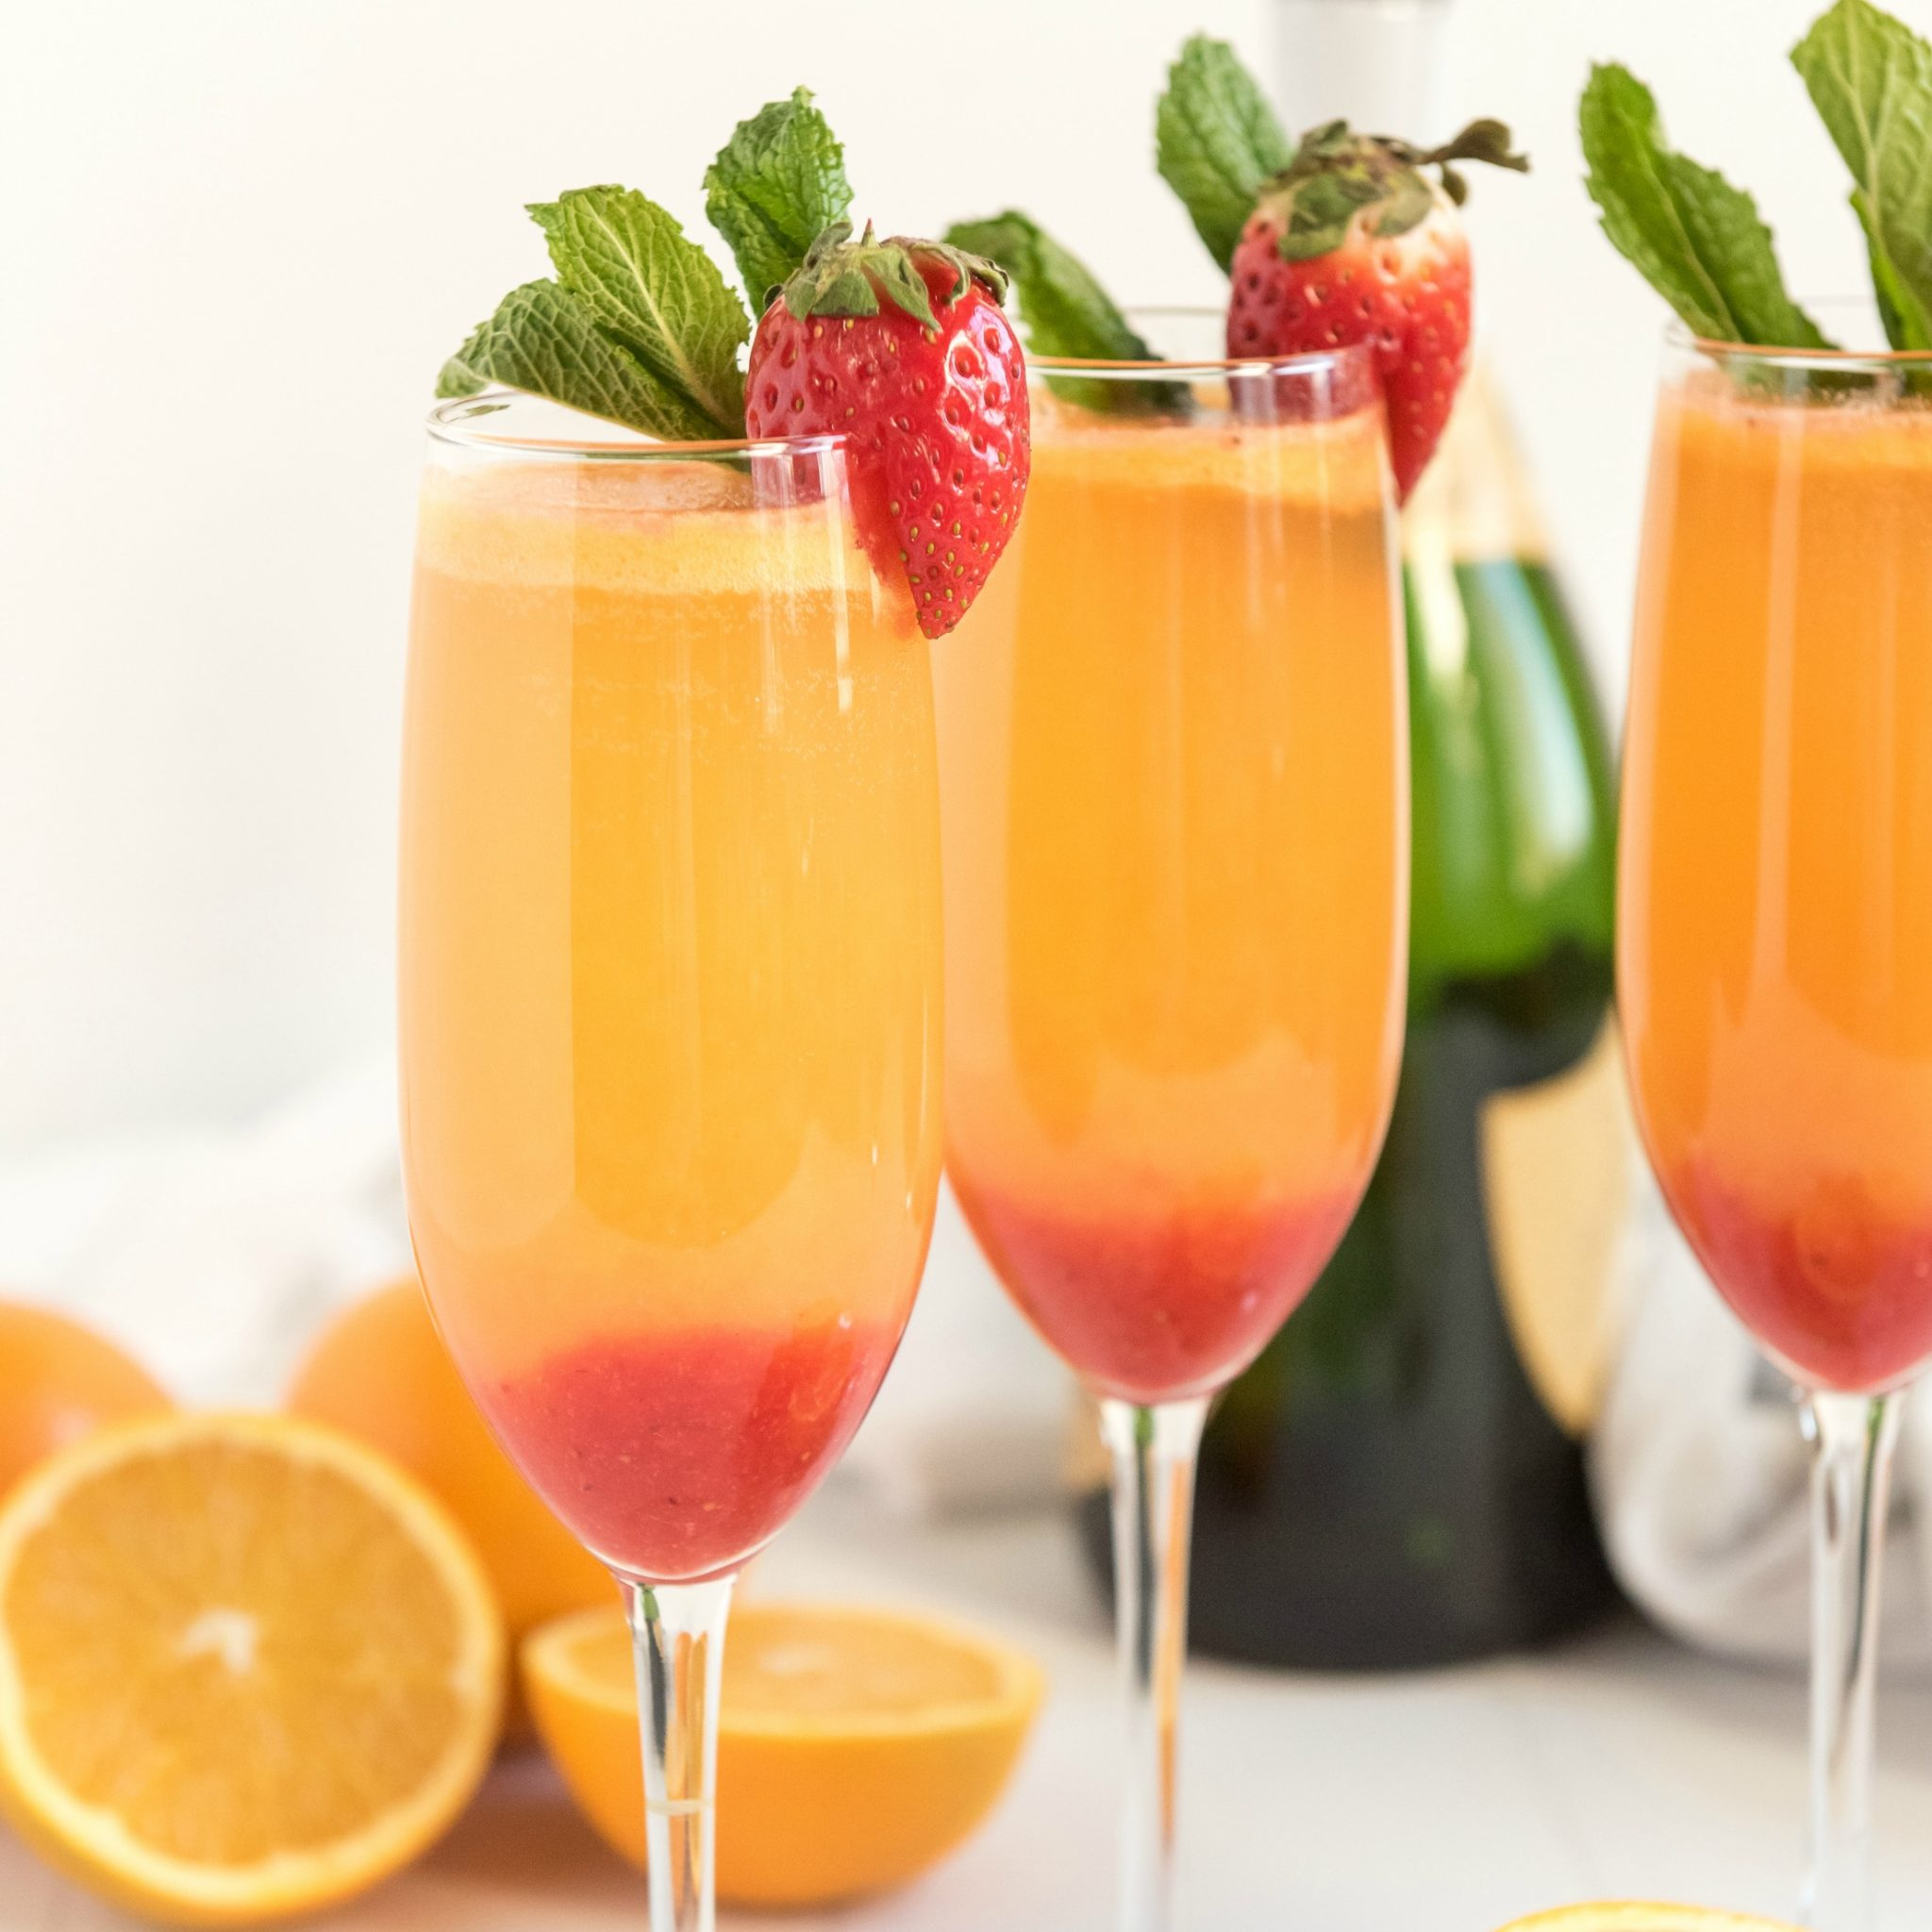 The Best Strawberry Mimosa Recipe - Kitchen Fun With My 3 Sons